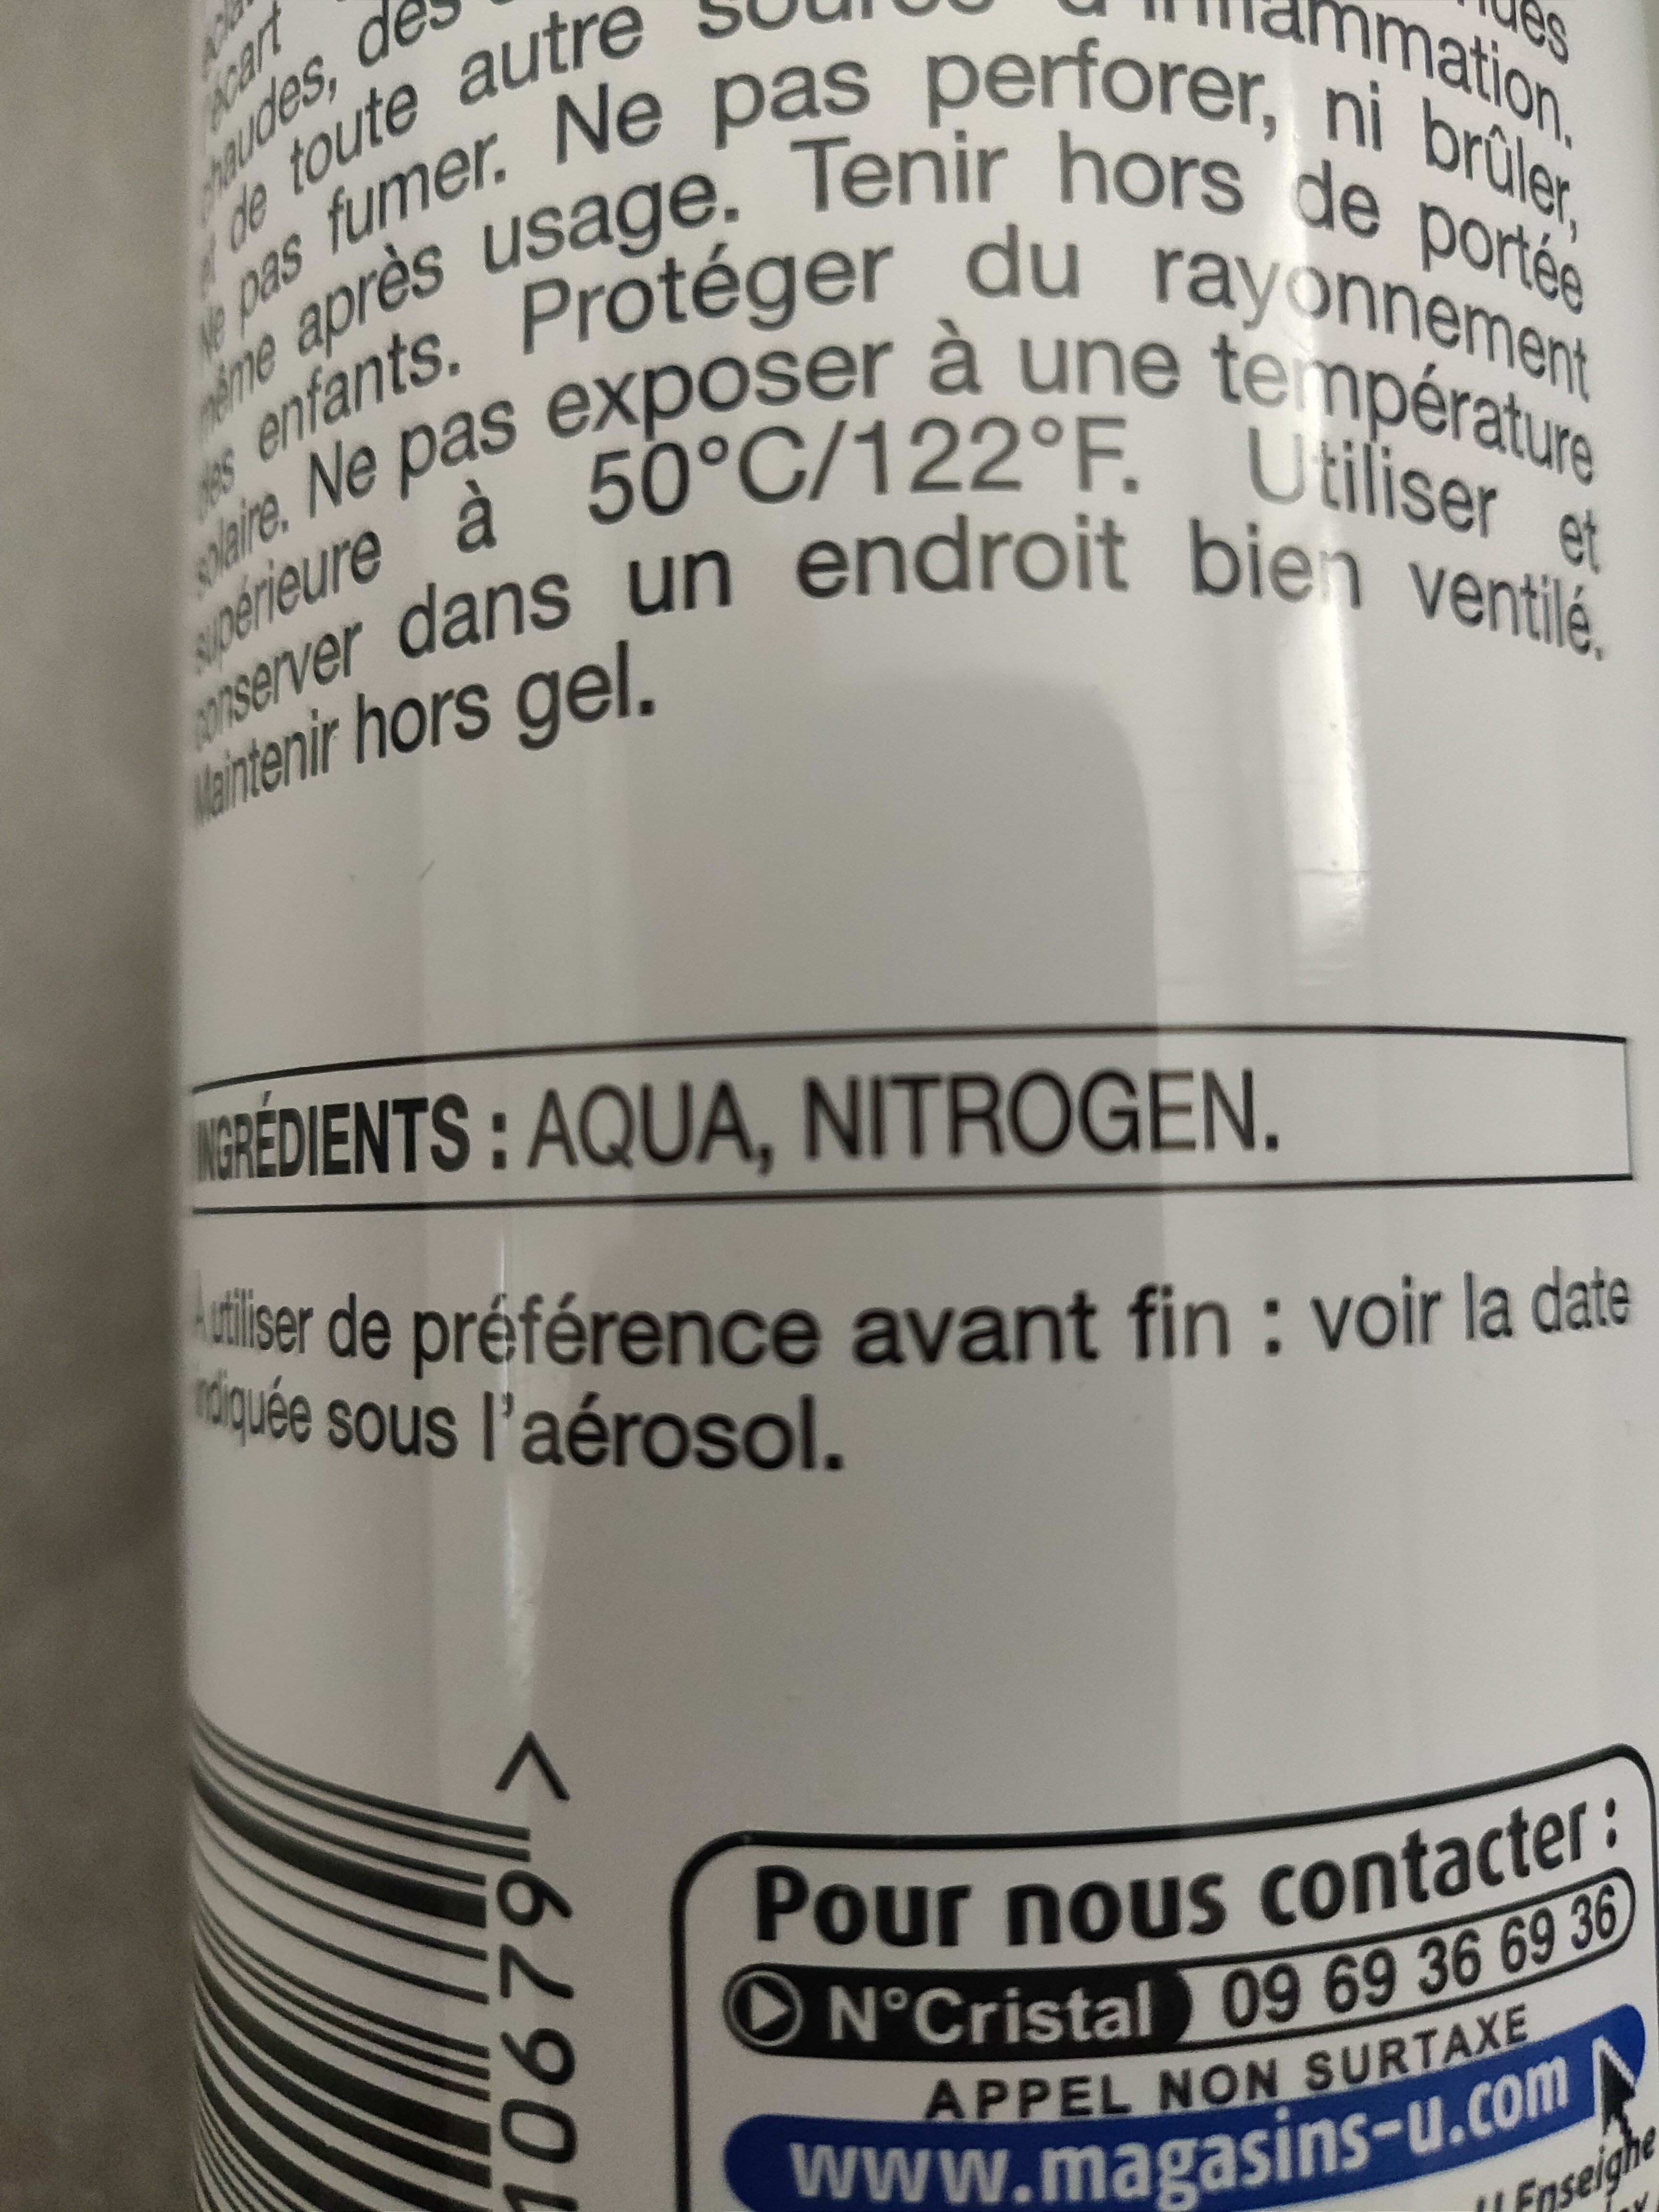 brume eau pure - Ingredients - fr